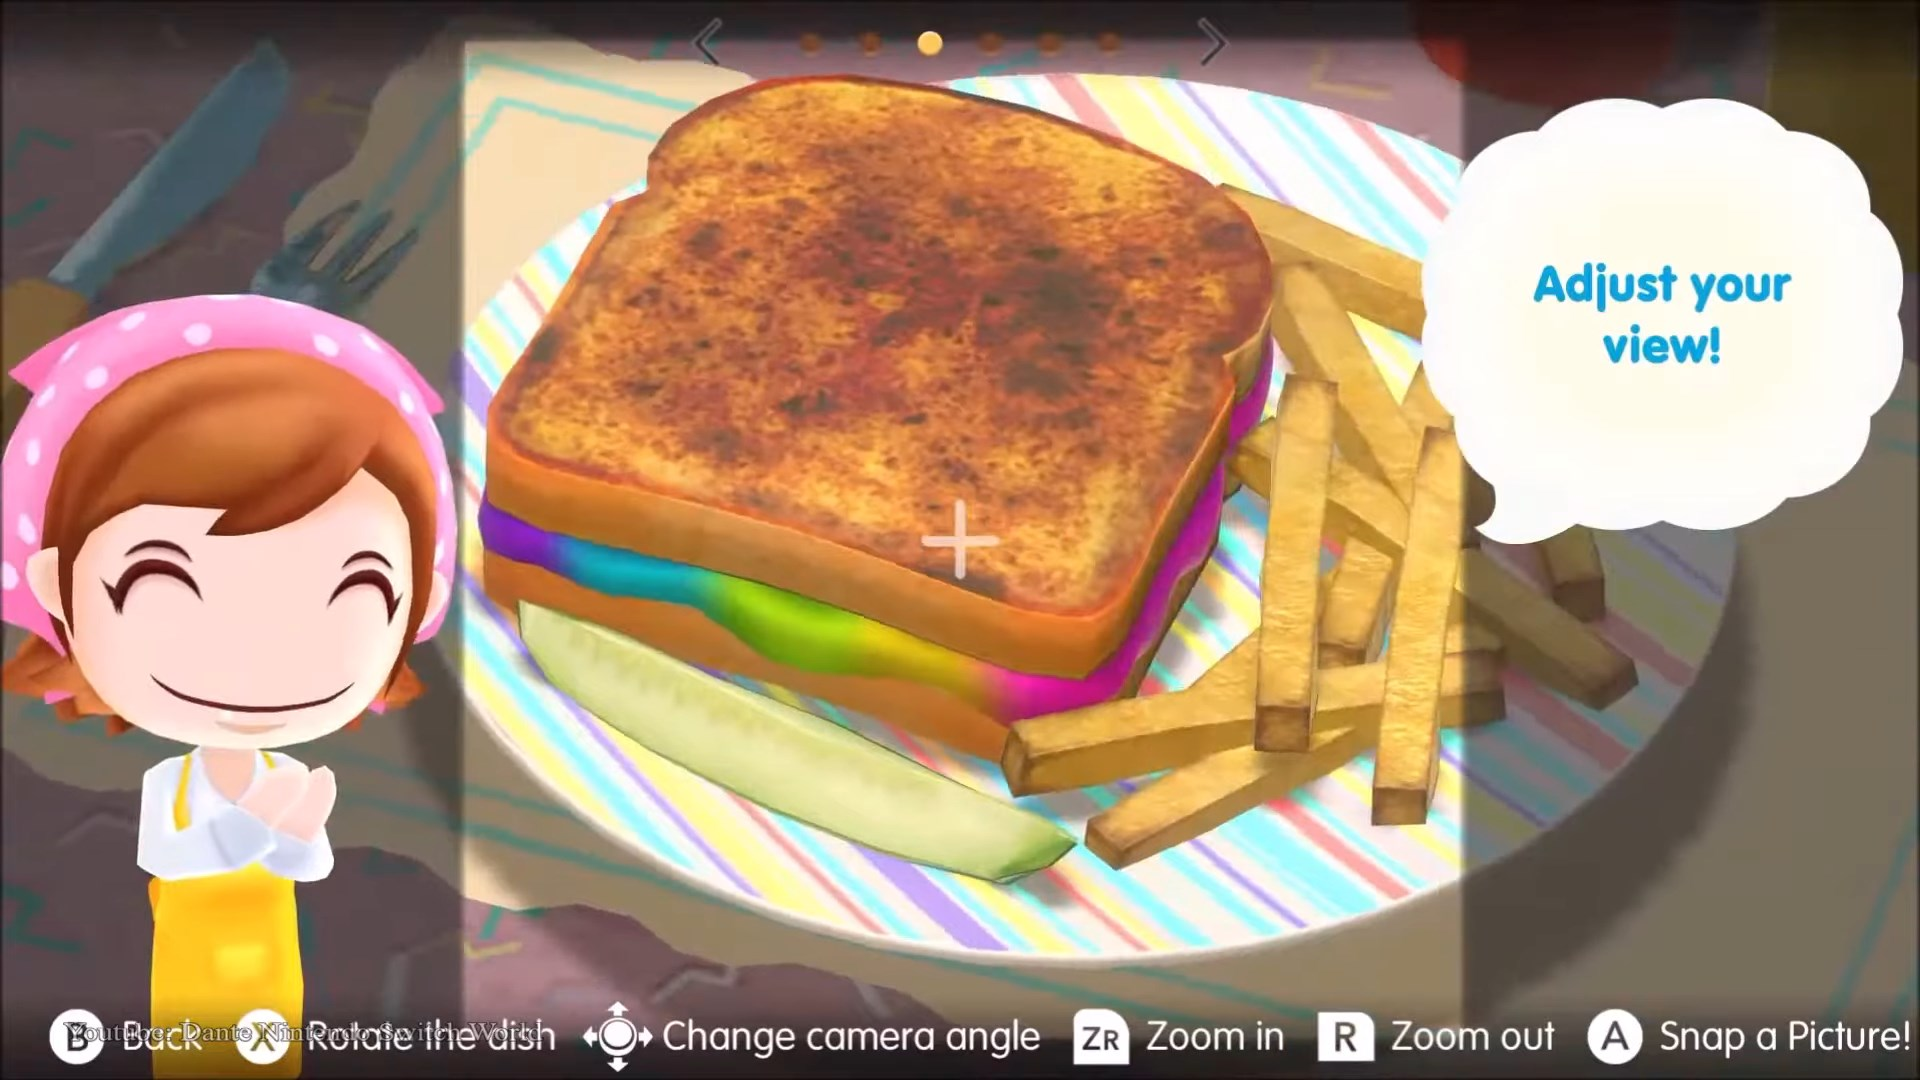 Mama stands happily next to a rainbow grilled cheese that's being photographed